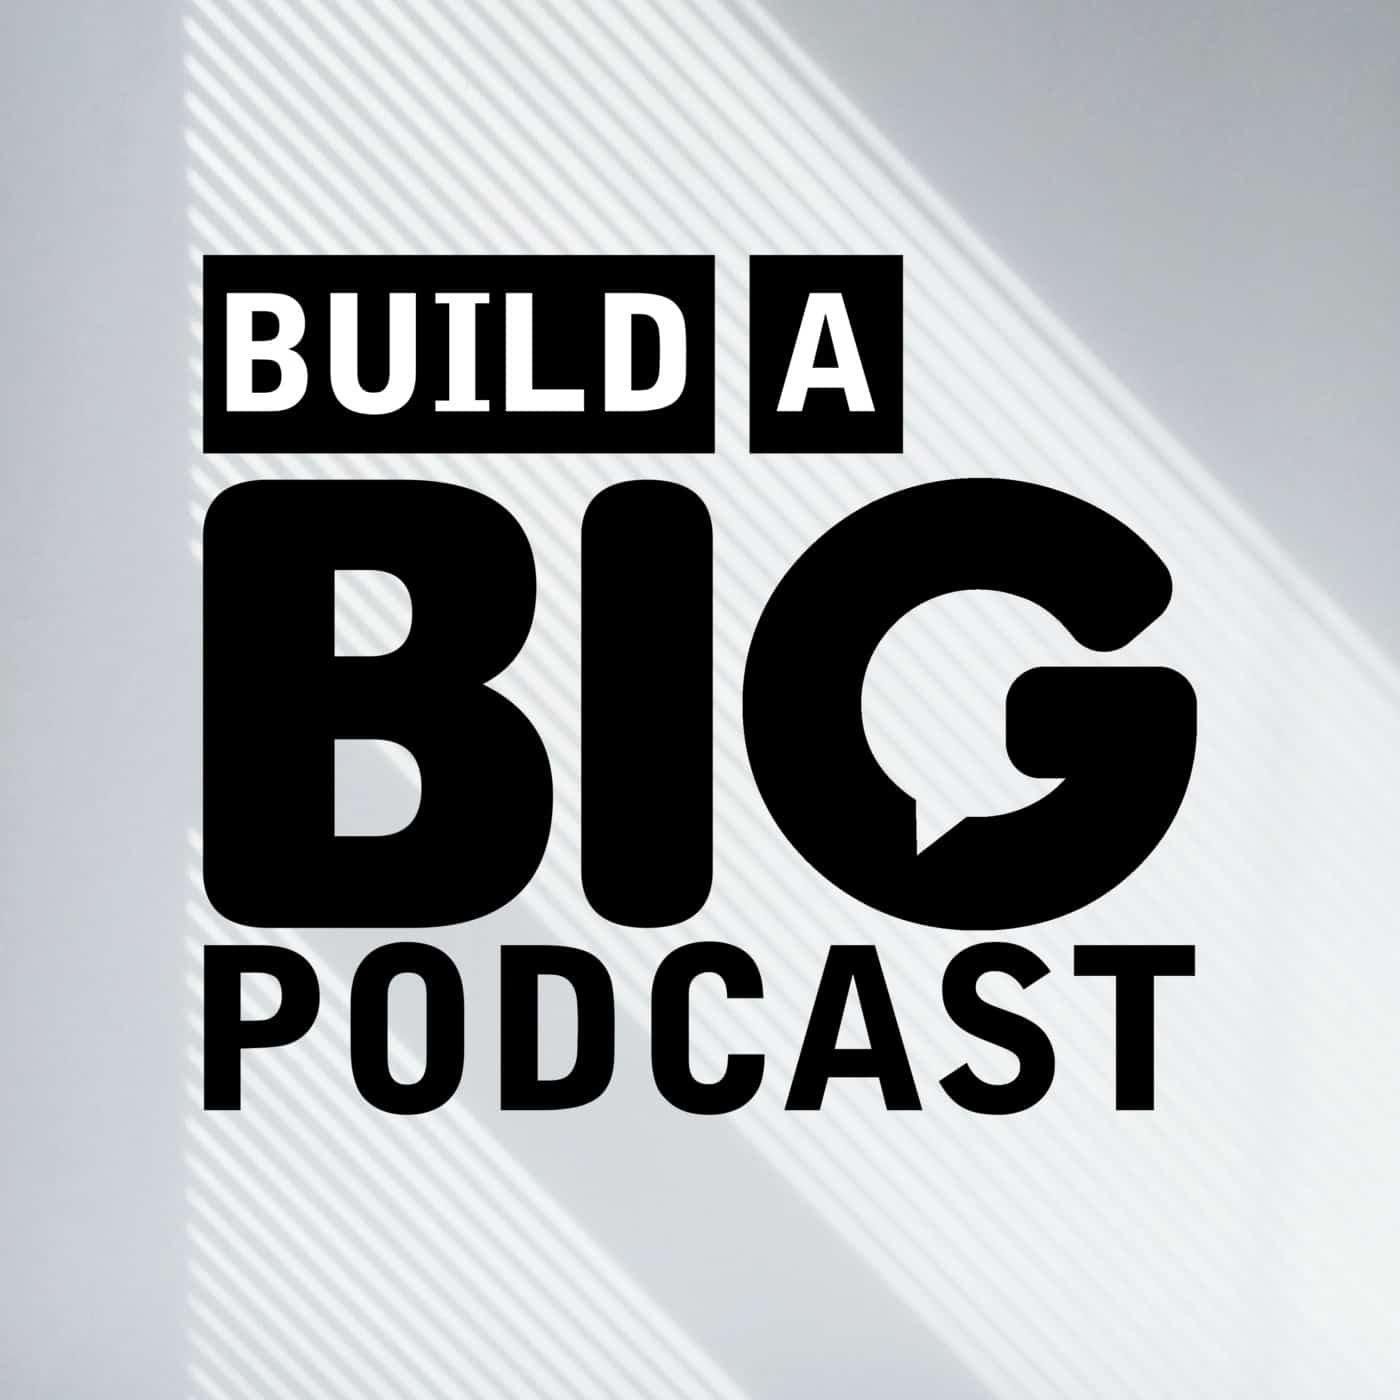 Artwork for Big Podcast Giveaway - Remote Podcasting Package